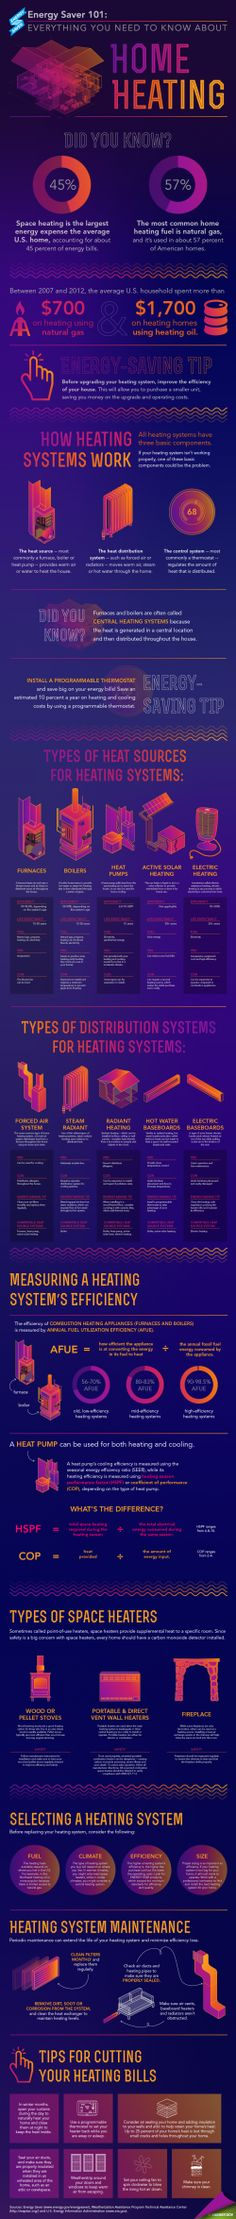 Everything you need to know about home heating, including how heating systems work, the different types on the market and proper maintenance.